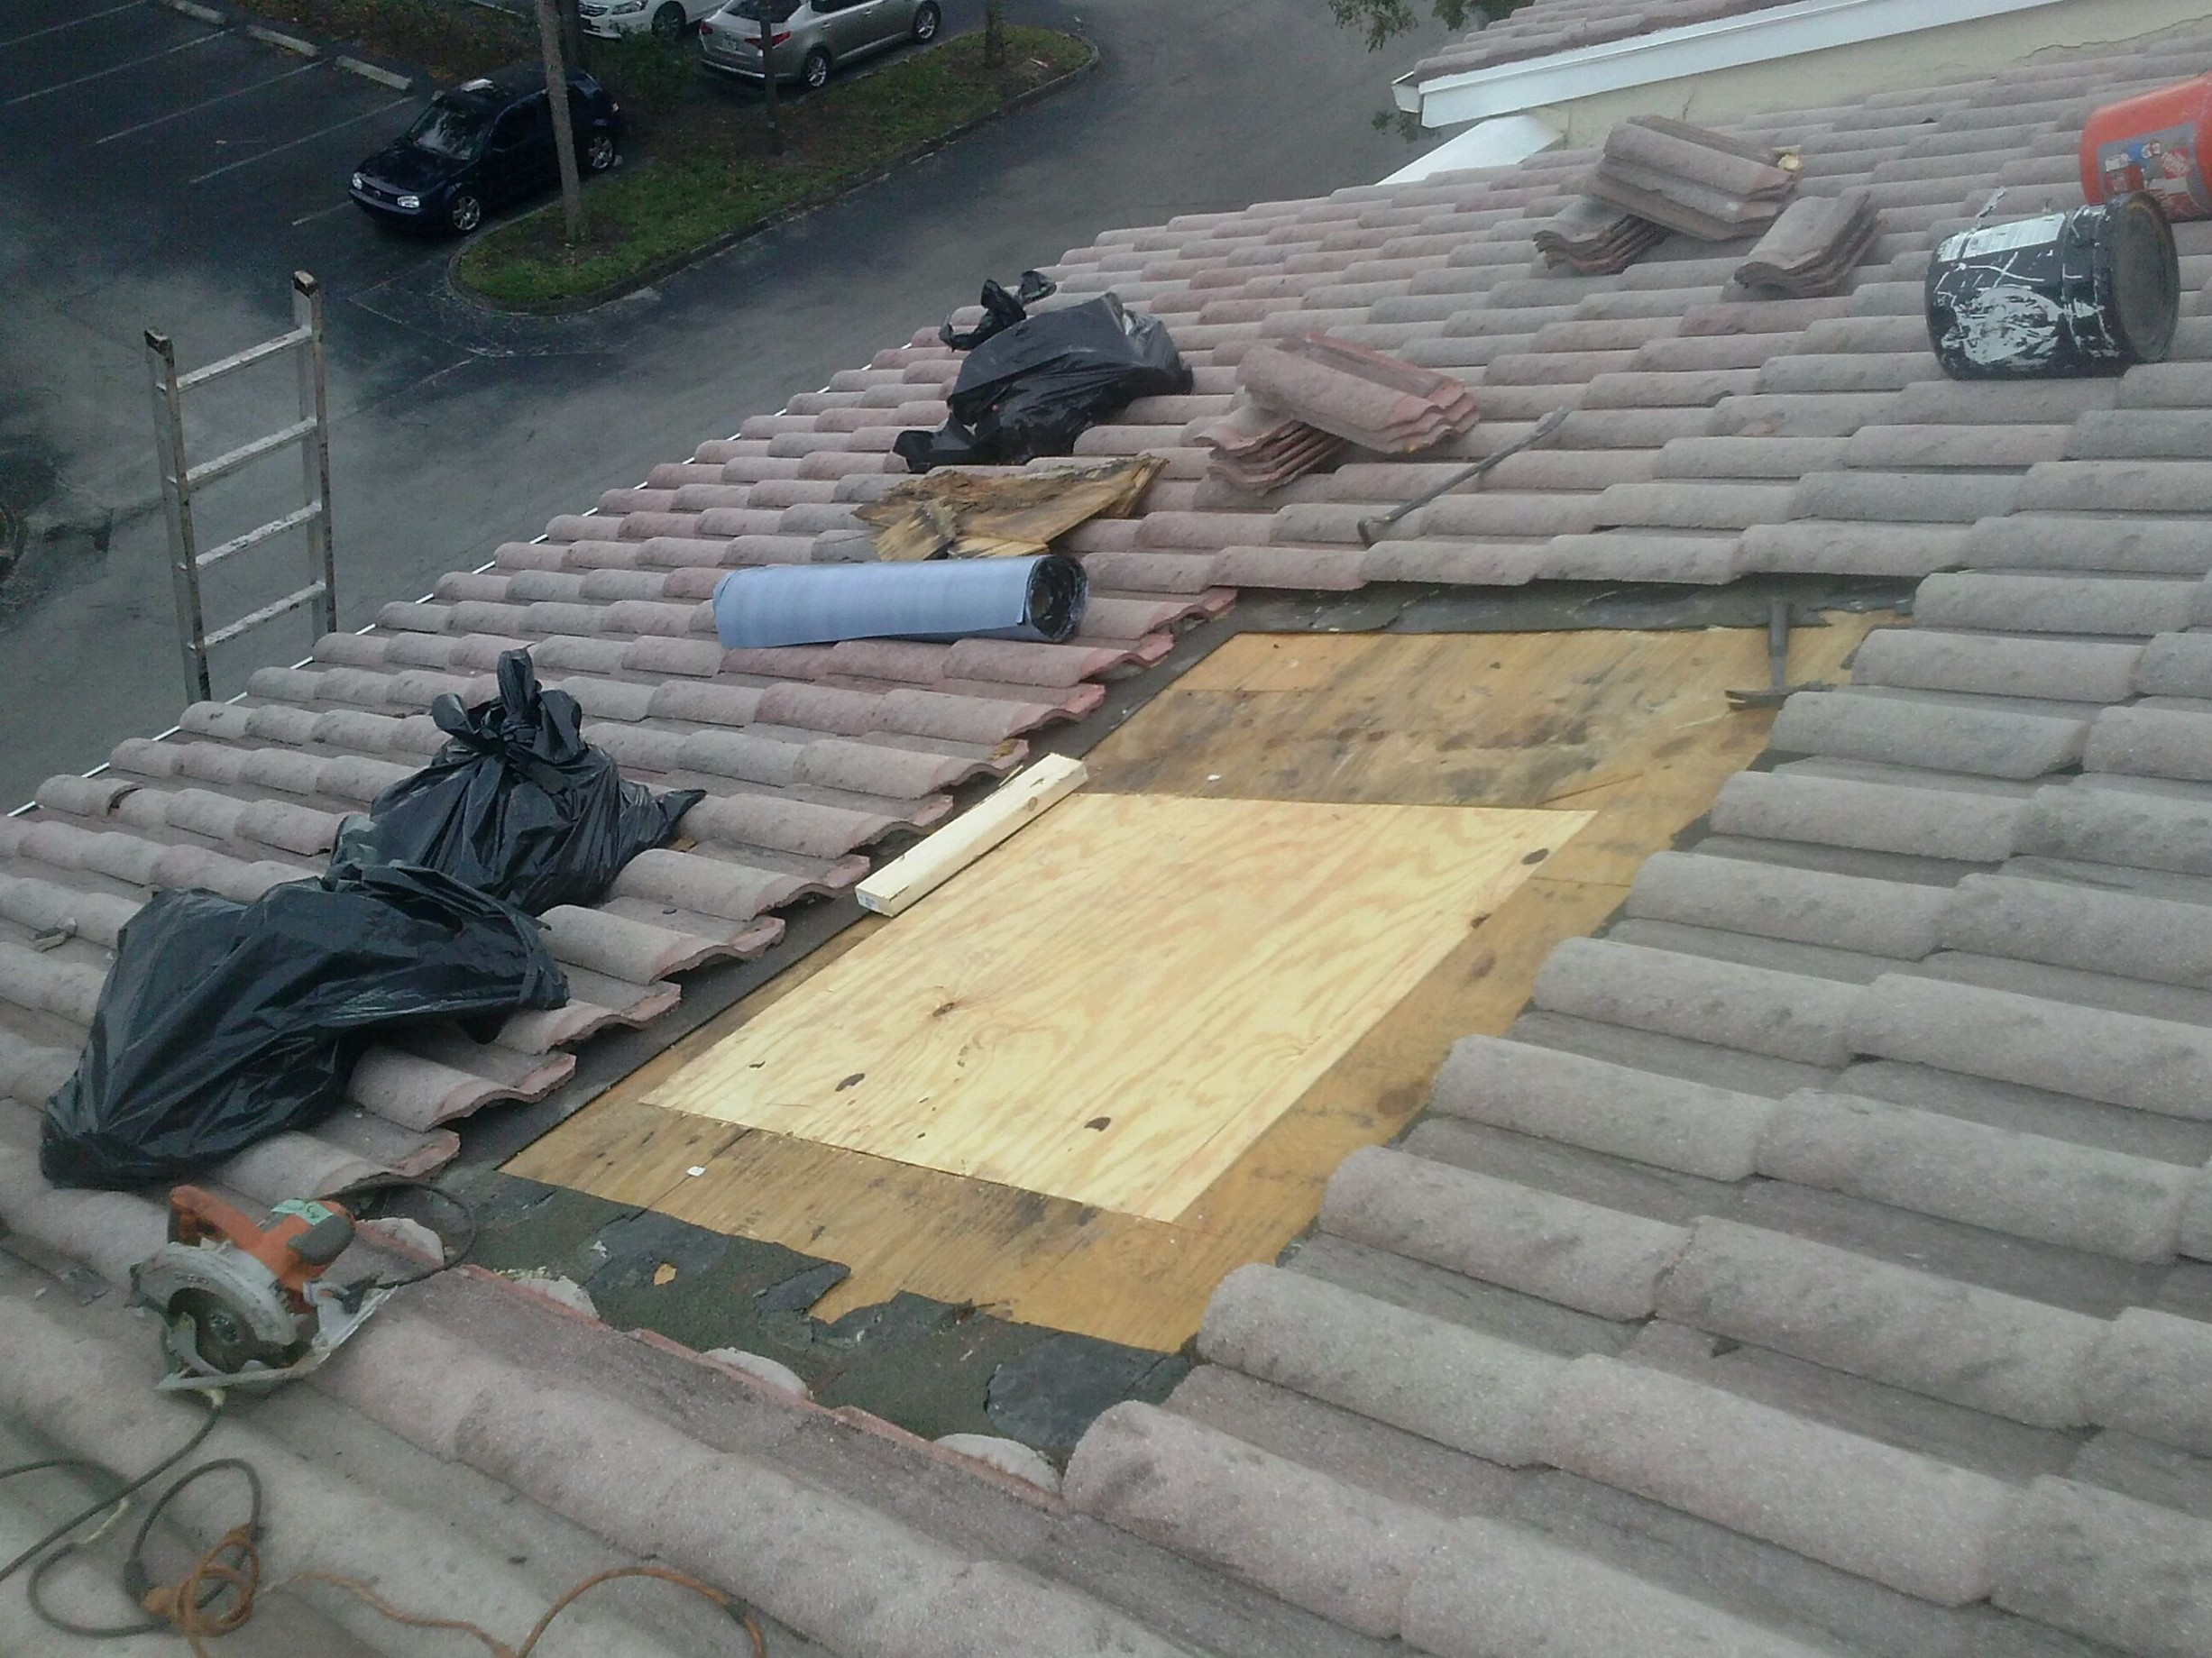 tile roof repair boca raton preventive maintenancepreventive maintenance. Black Bedroom Furniture Sets. Home Design Ideas